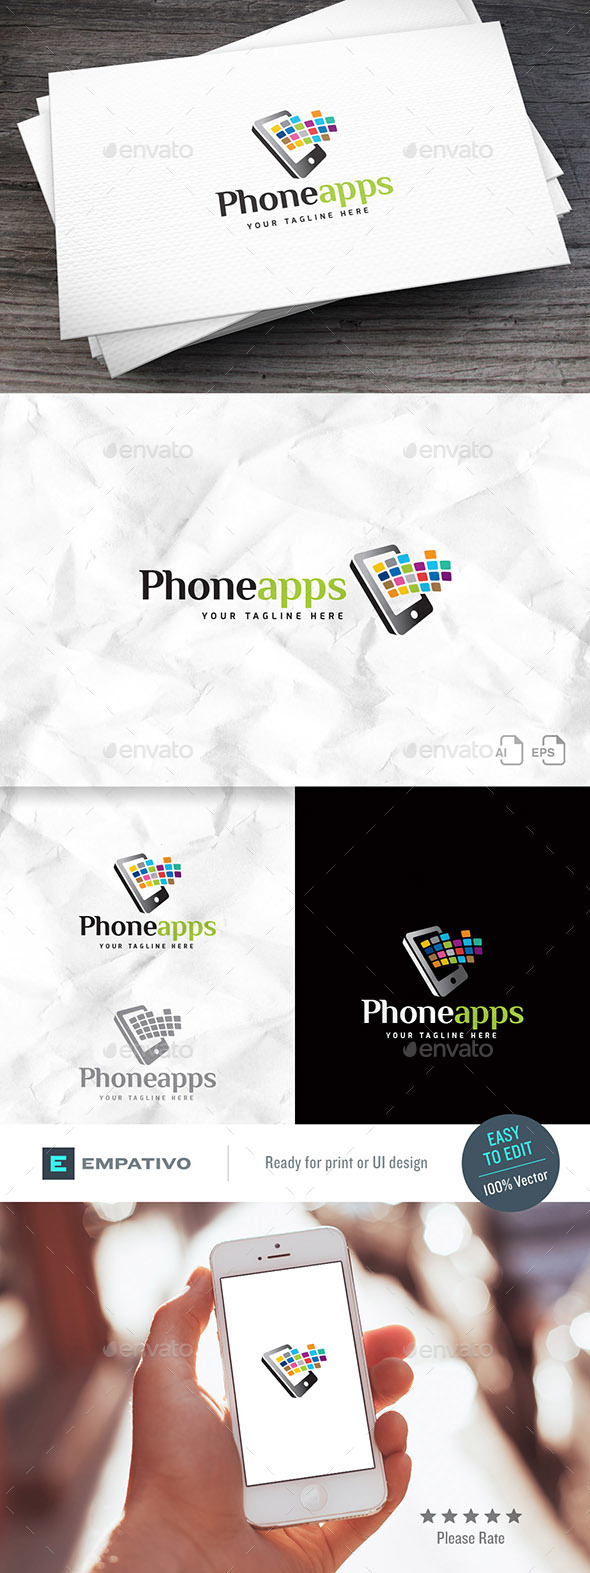 Phoneapps Logo Template - Objects Logo Templates